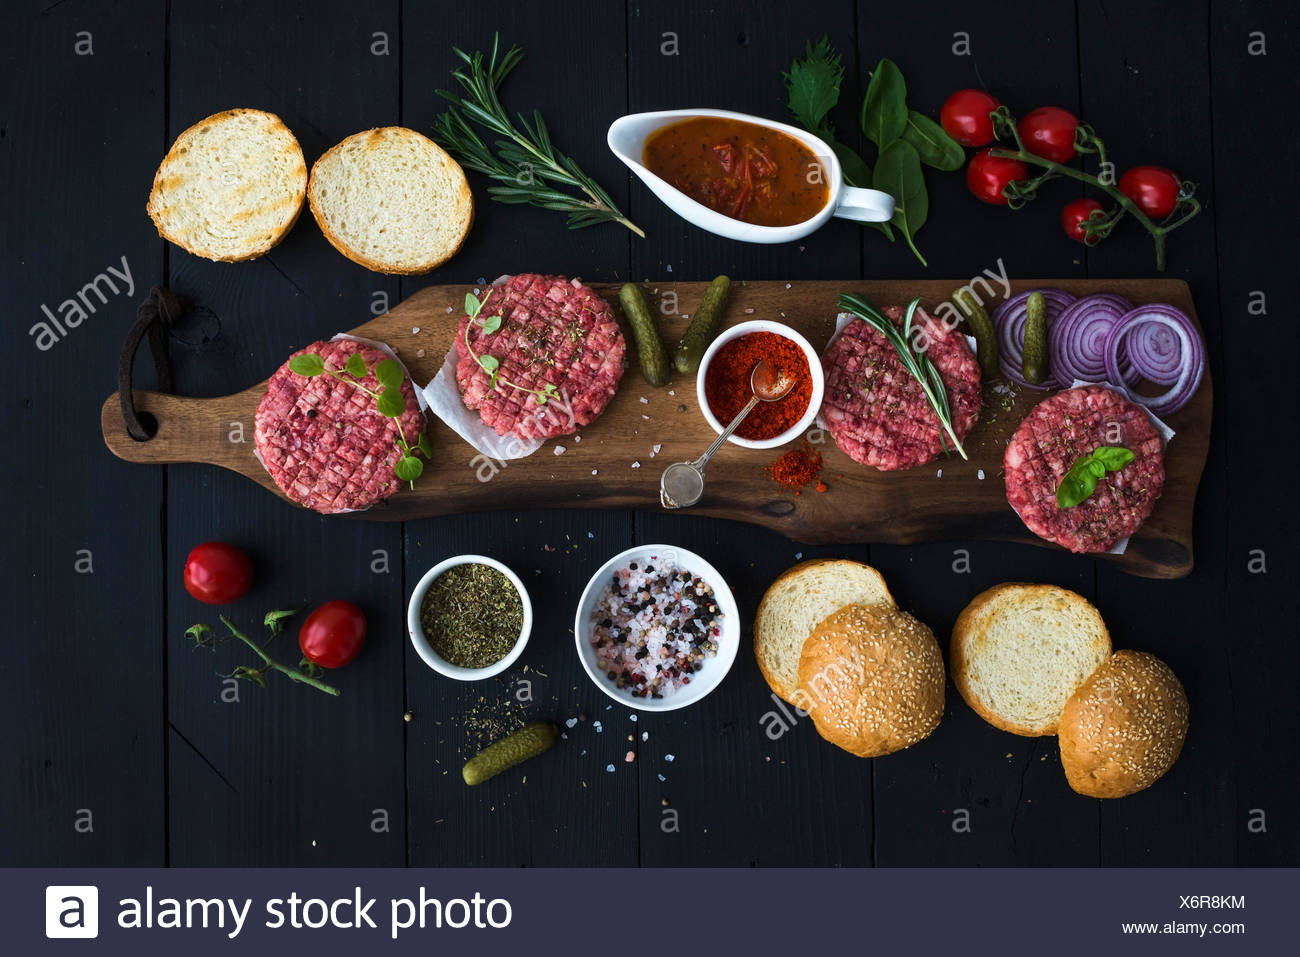 Ingredients for cooking burgers. Raw ground beef meat cutlets on wooden chopping board, red onion, cherry tomatoes, greens, pick - Stock Image